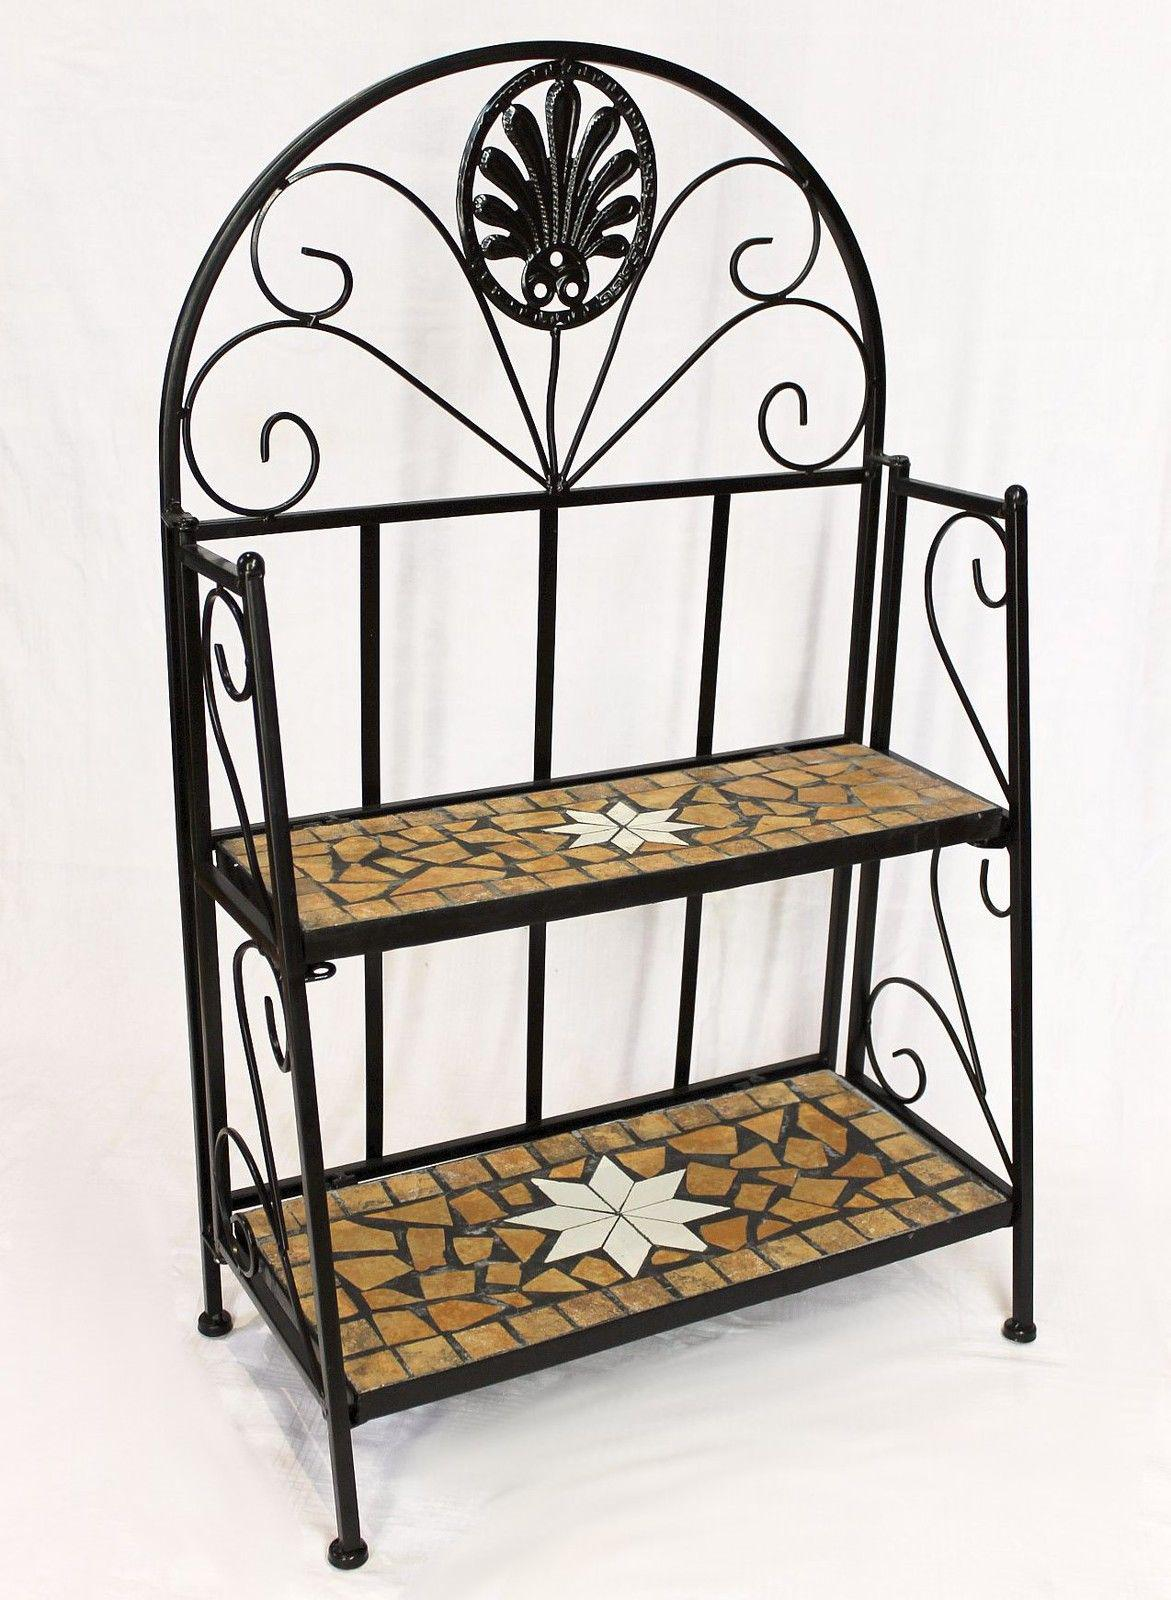 regal mosaik merano 12006 b cherregal 80 cm aus metall schmiedeeisen badregal ebay. Black Bedroom Furniture Sets. Home Design Ideas